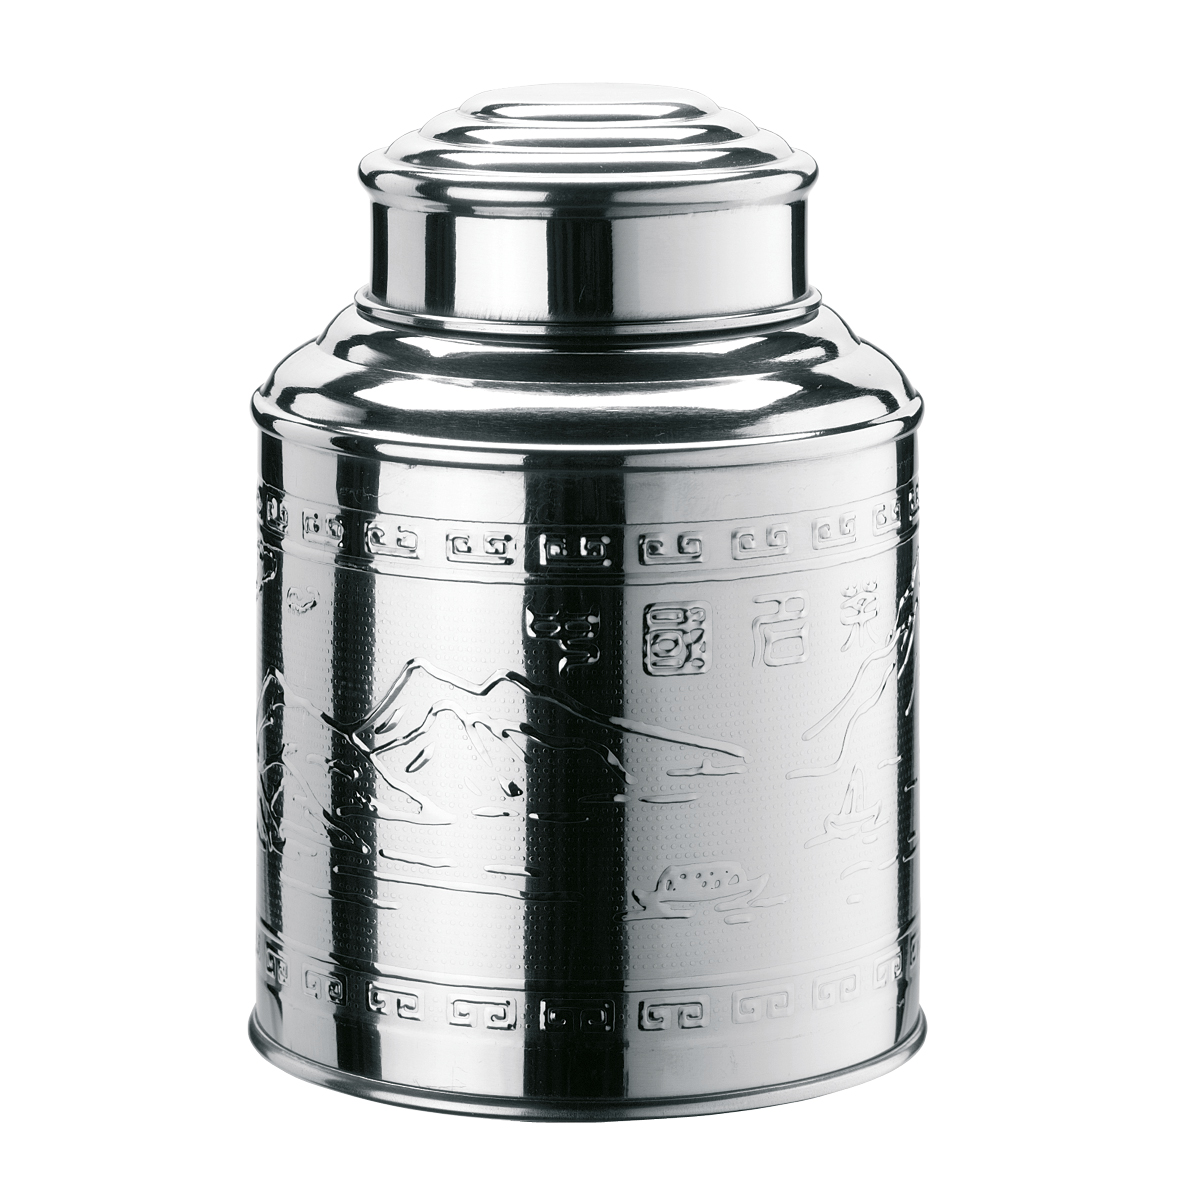 Tea Caddy, 200g